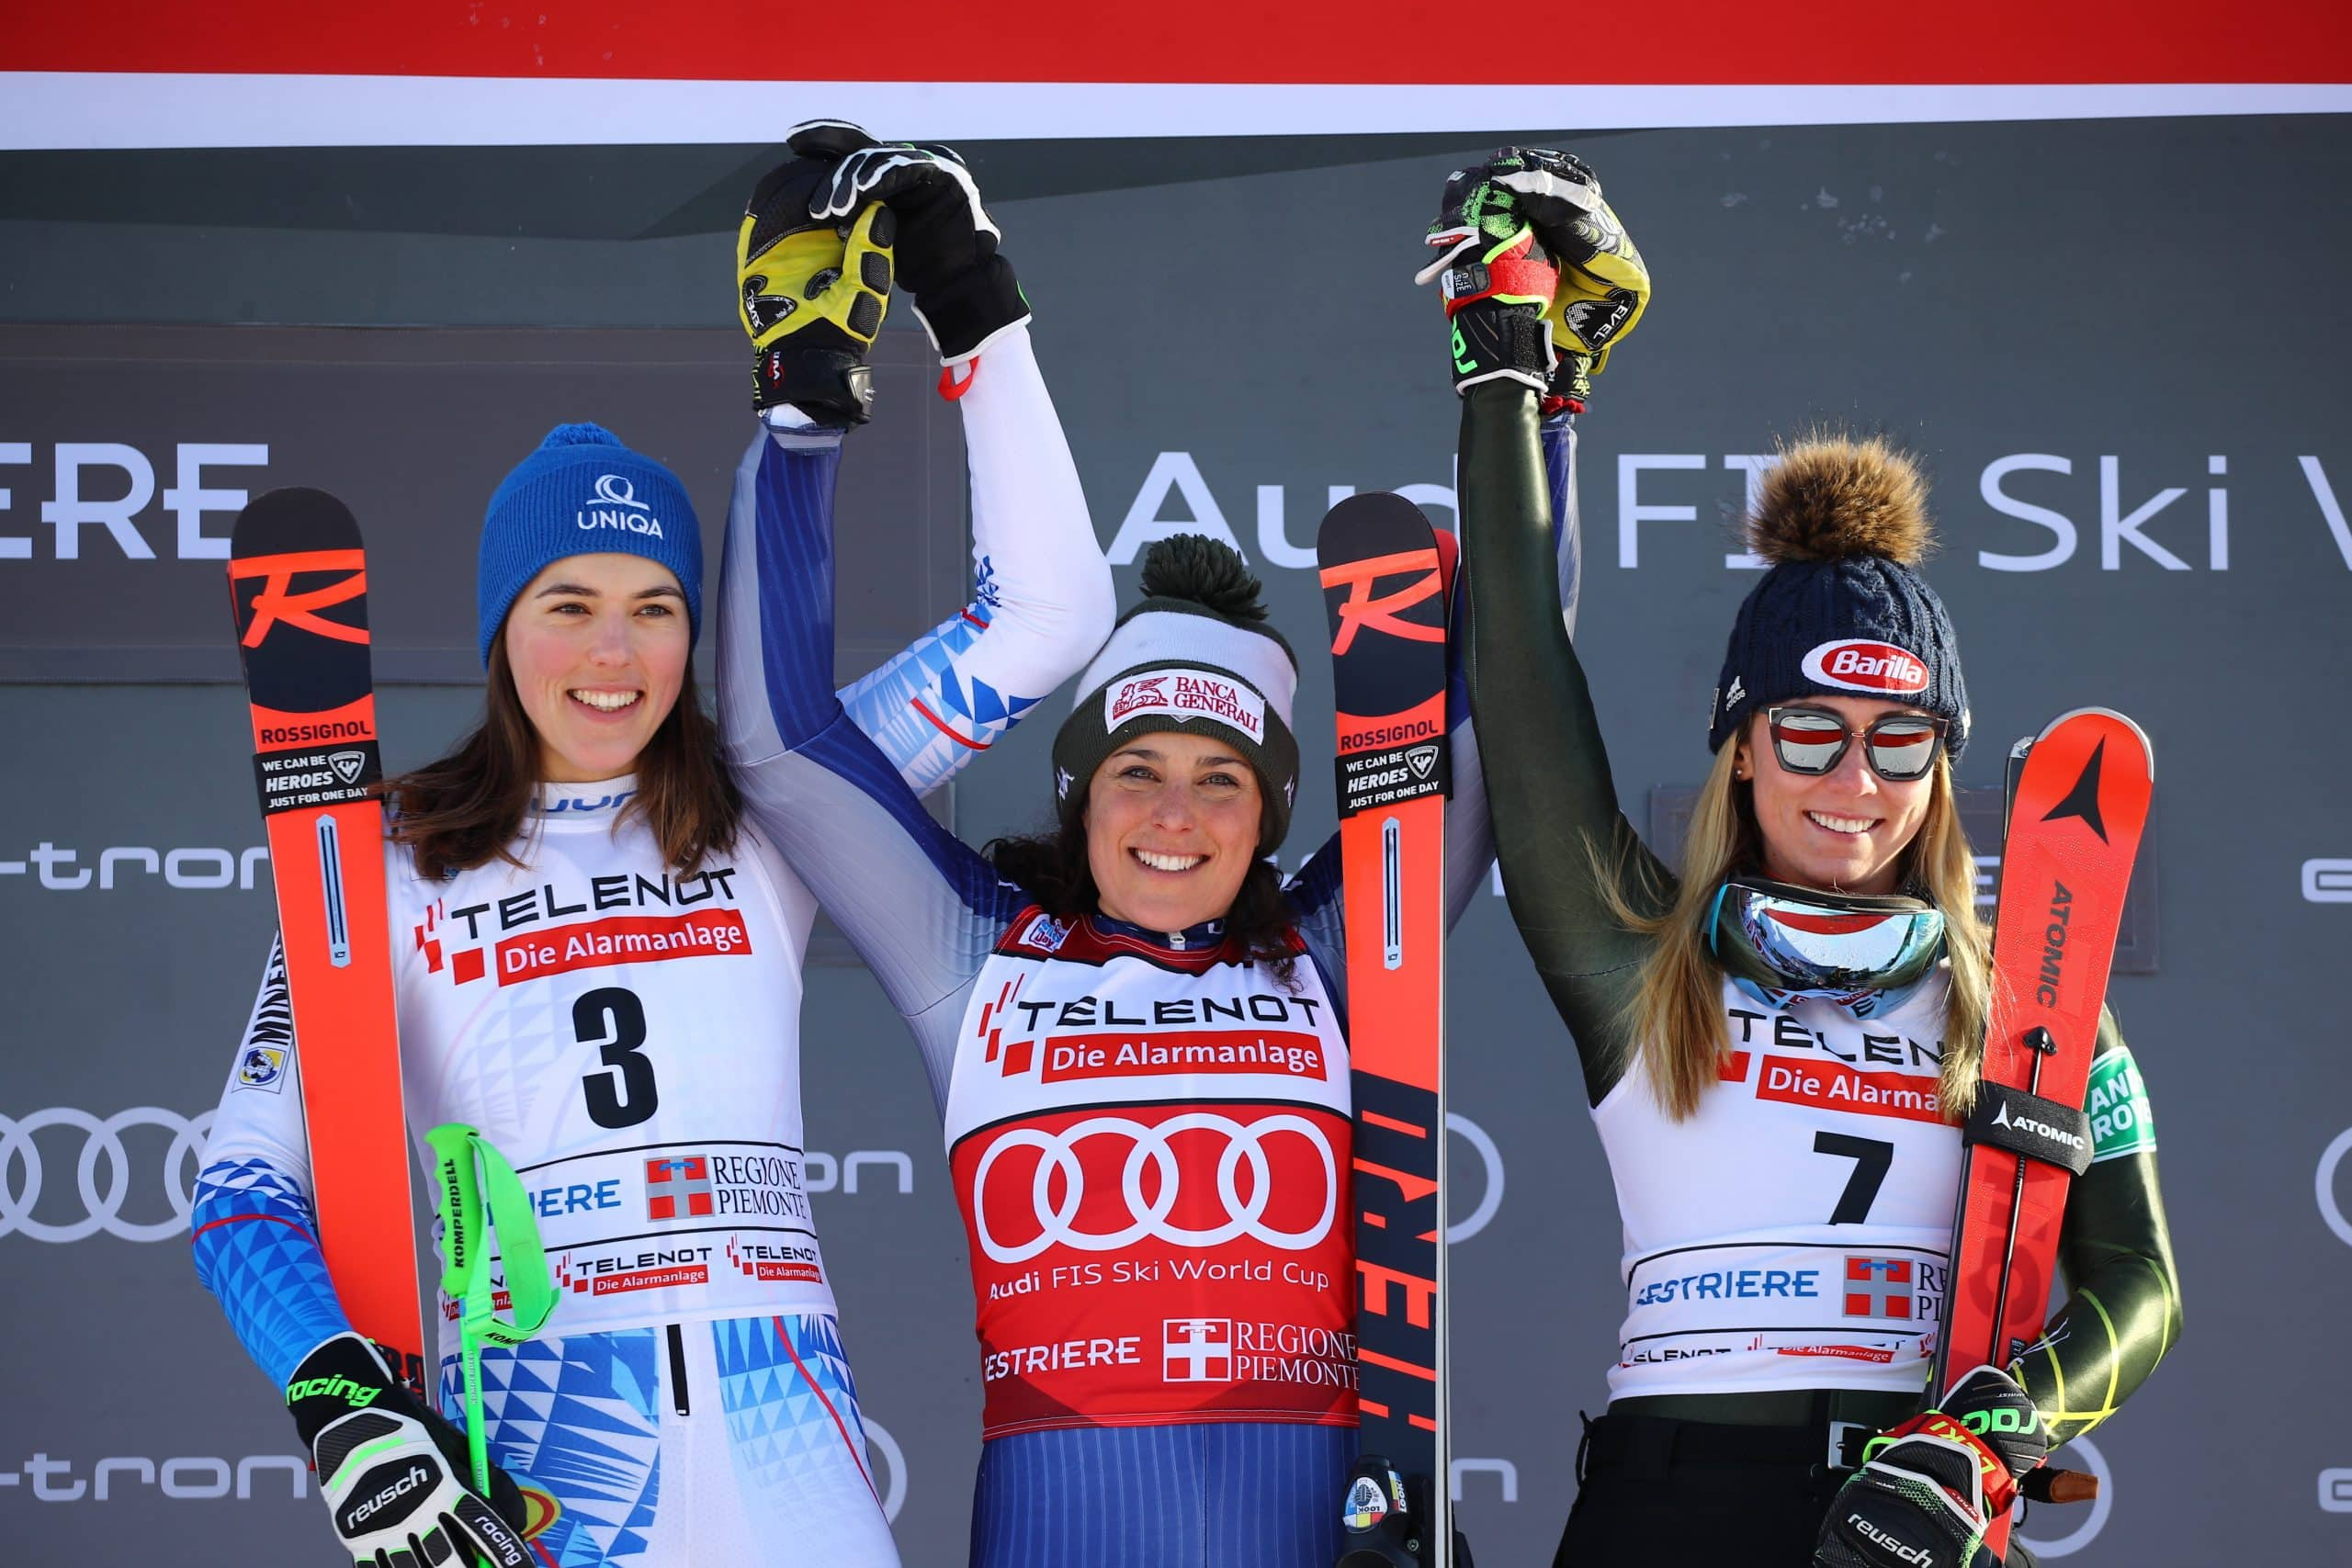 Mikaela Shiffrin takes third in World Cup giant slalom in Sestriere; Brignone and Vlhova share win